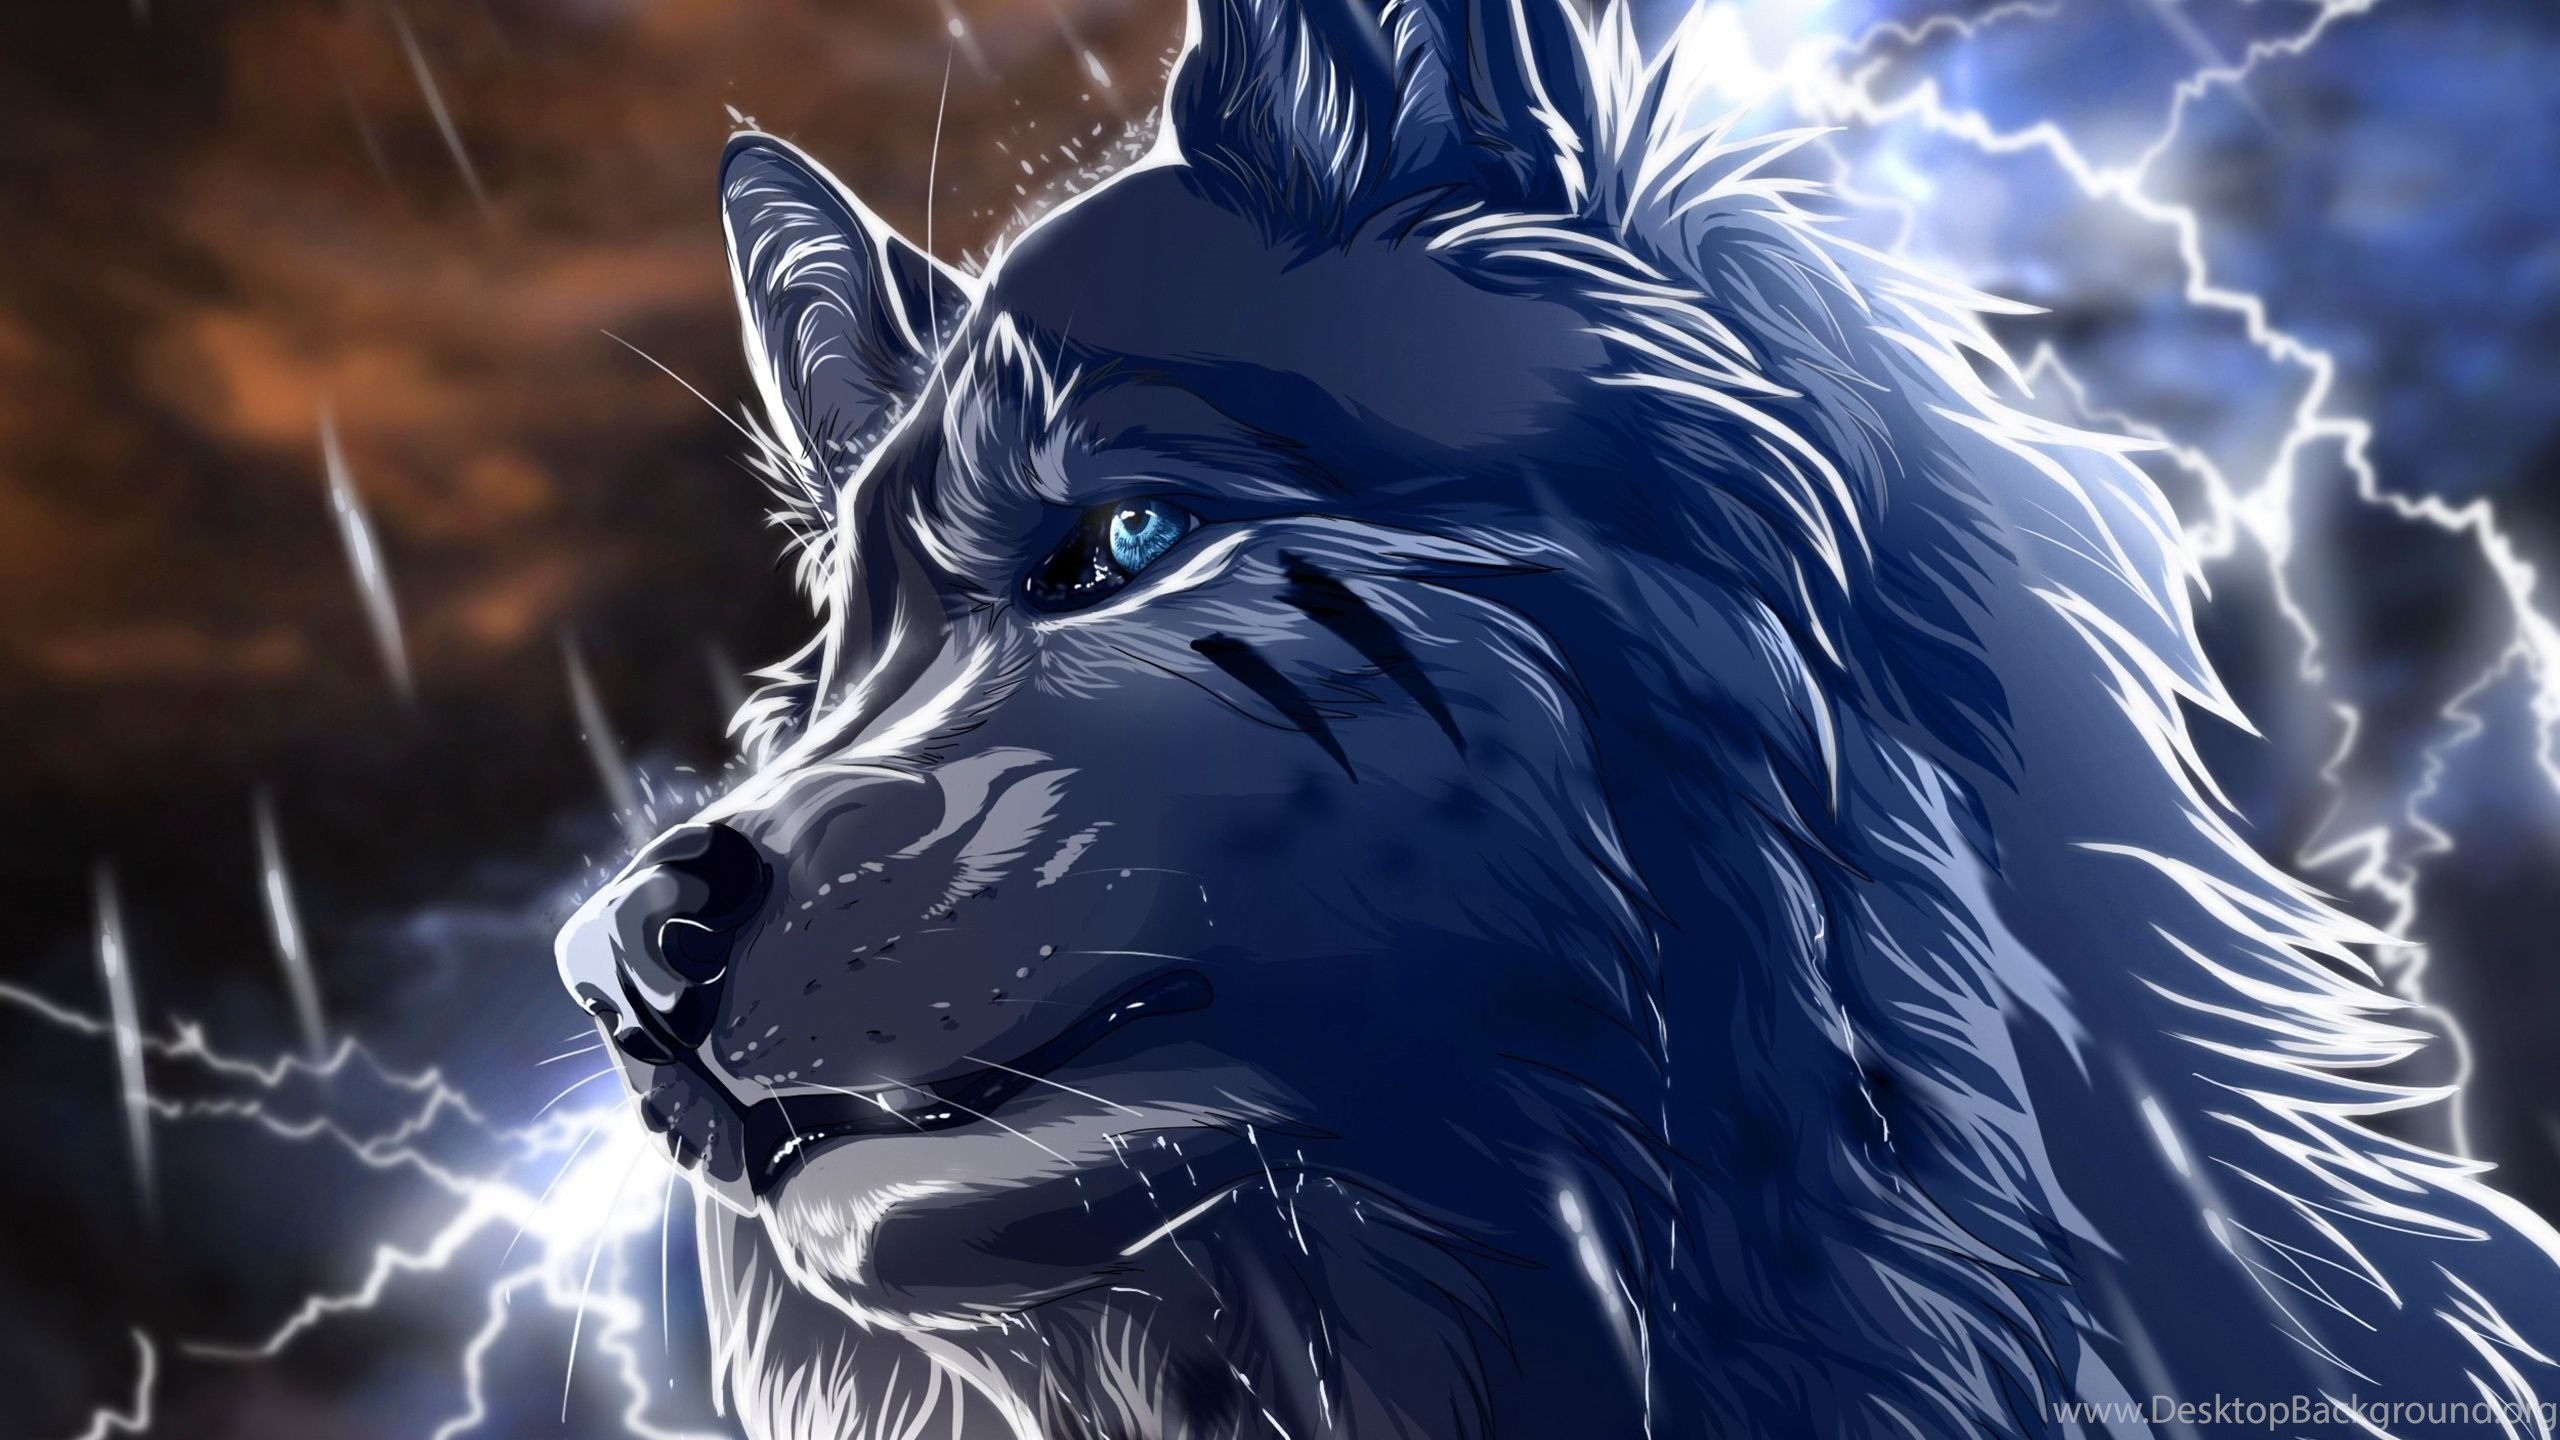 2560x1440 anime wolf wallpapers desktop background - Anime wolf wallpaper ...